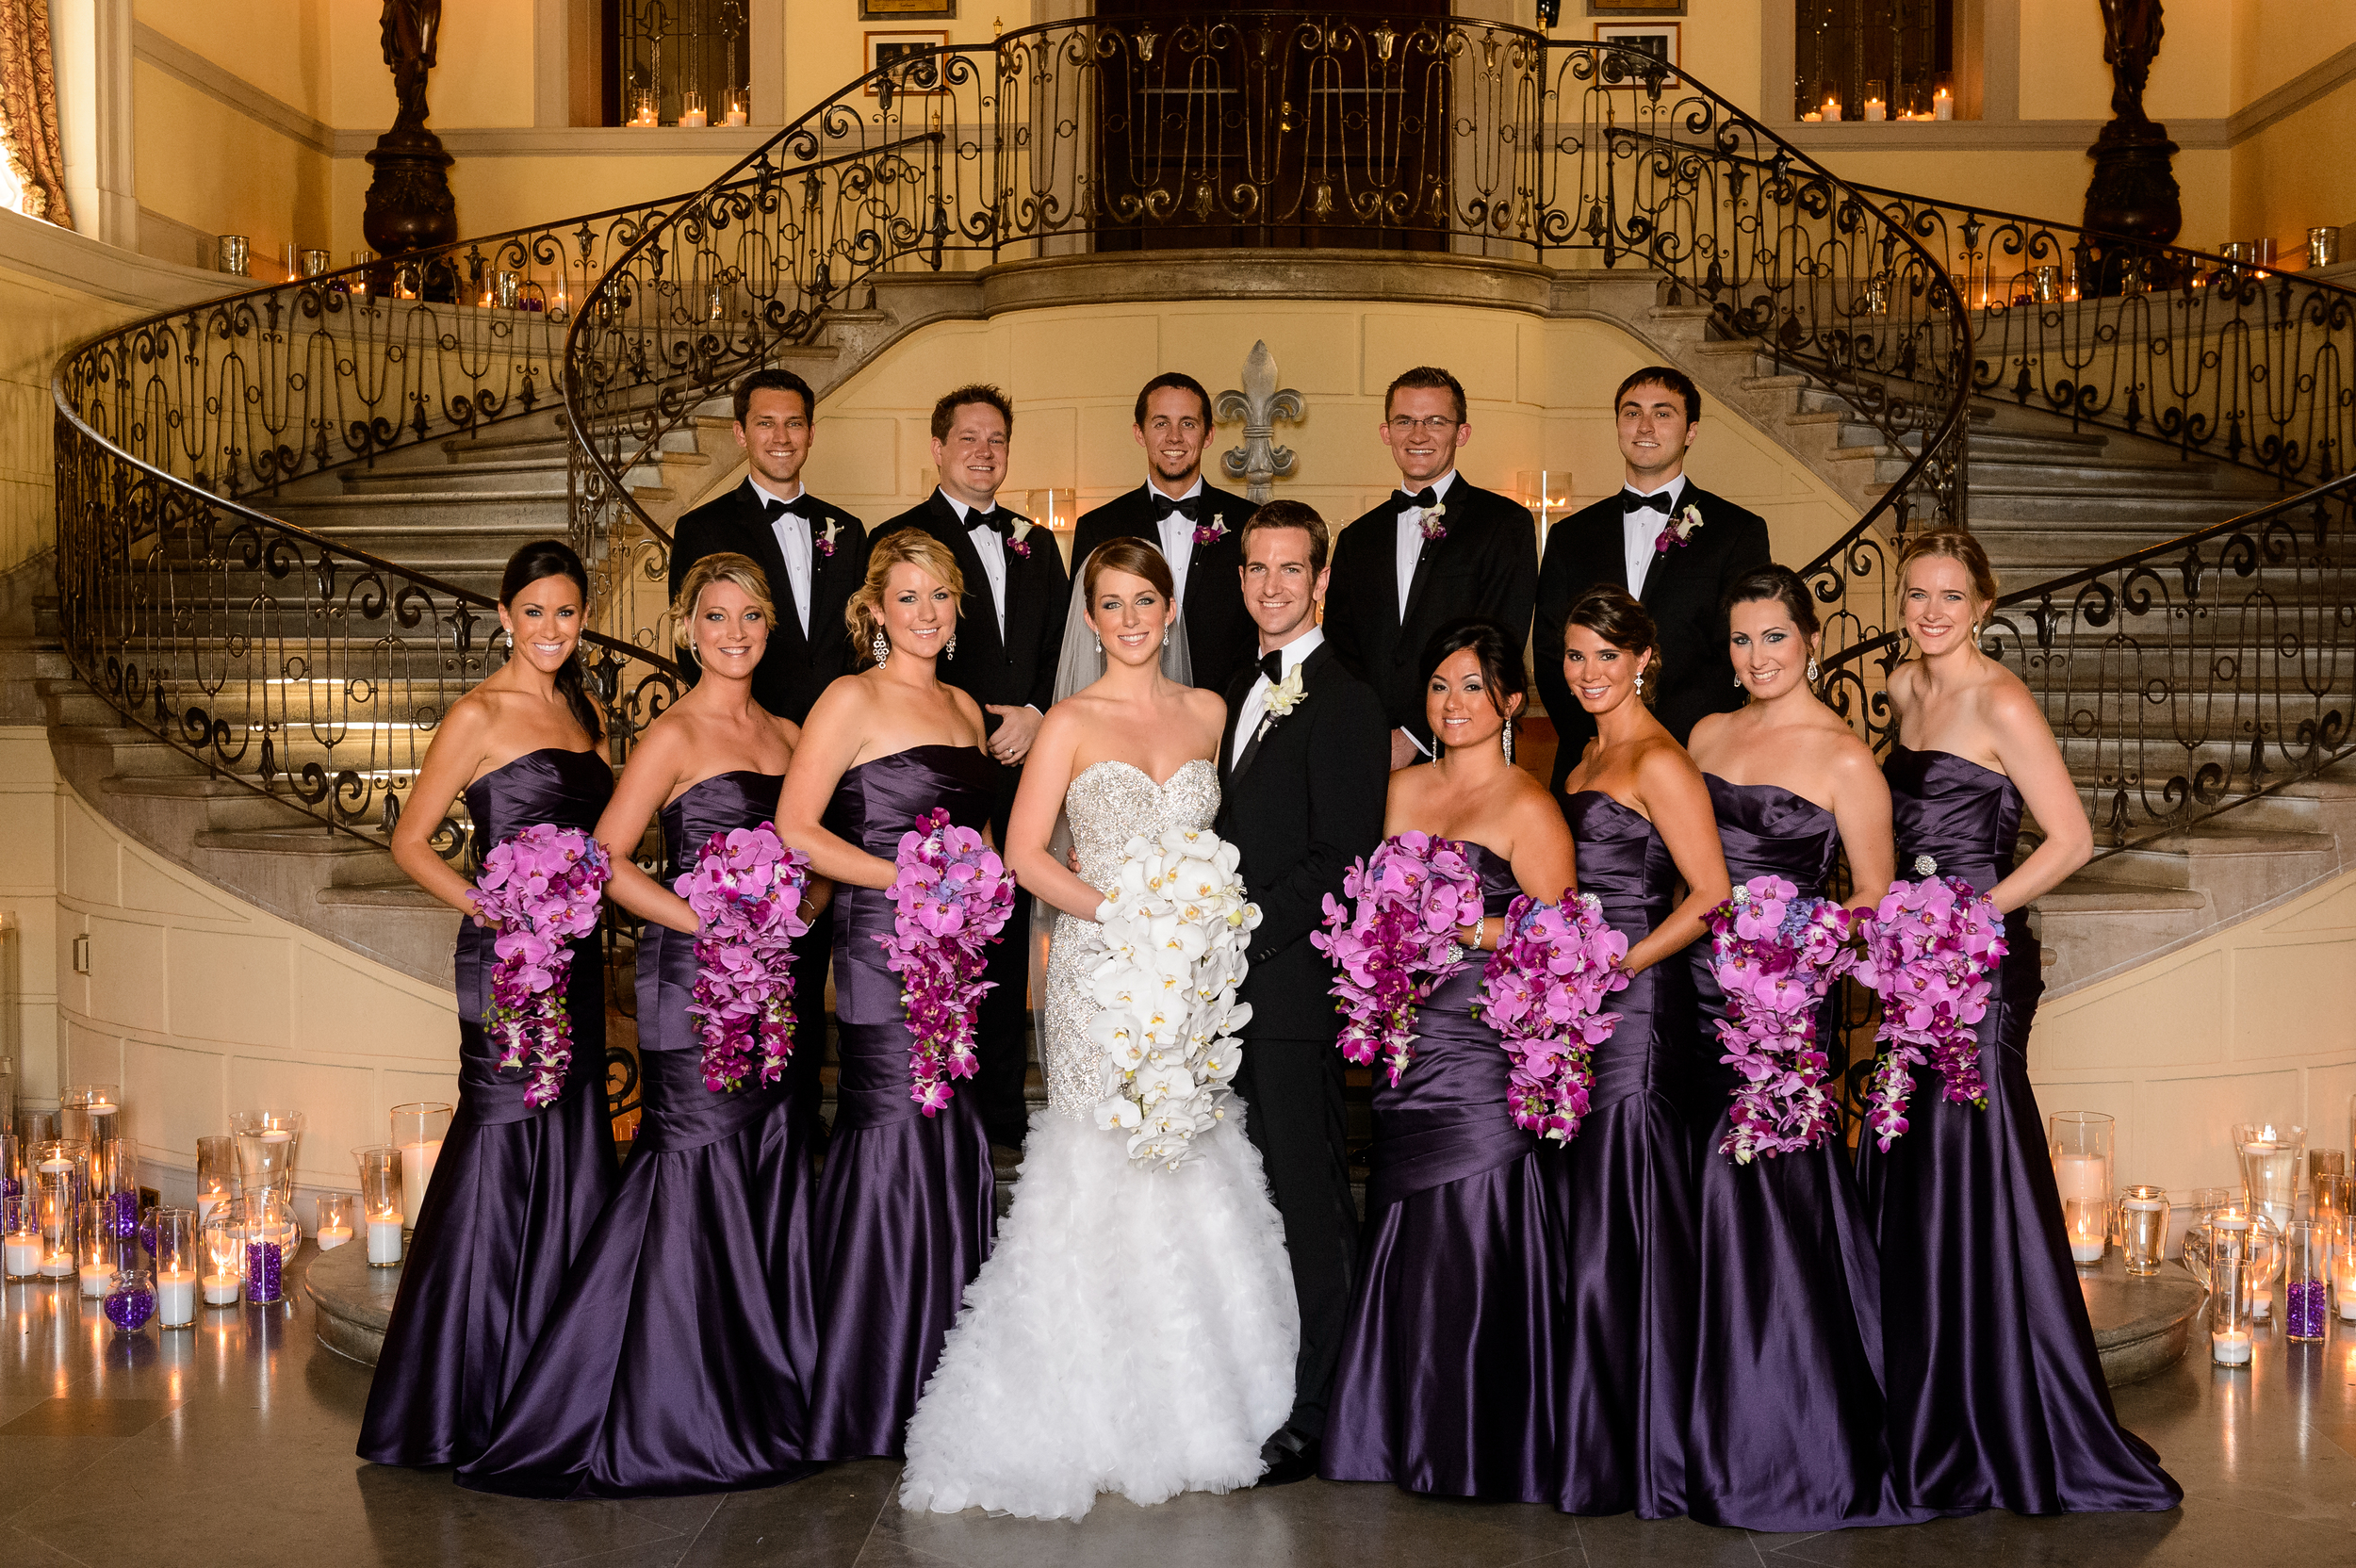 The entire bridal party, looking gorgeous in their bridesmaids gowns and tuxedos!